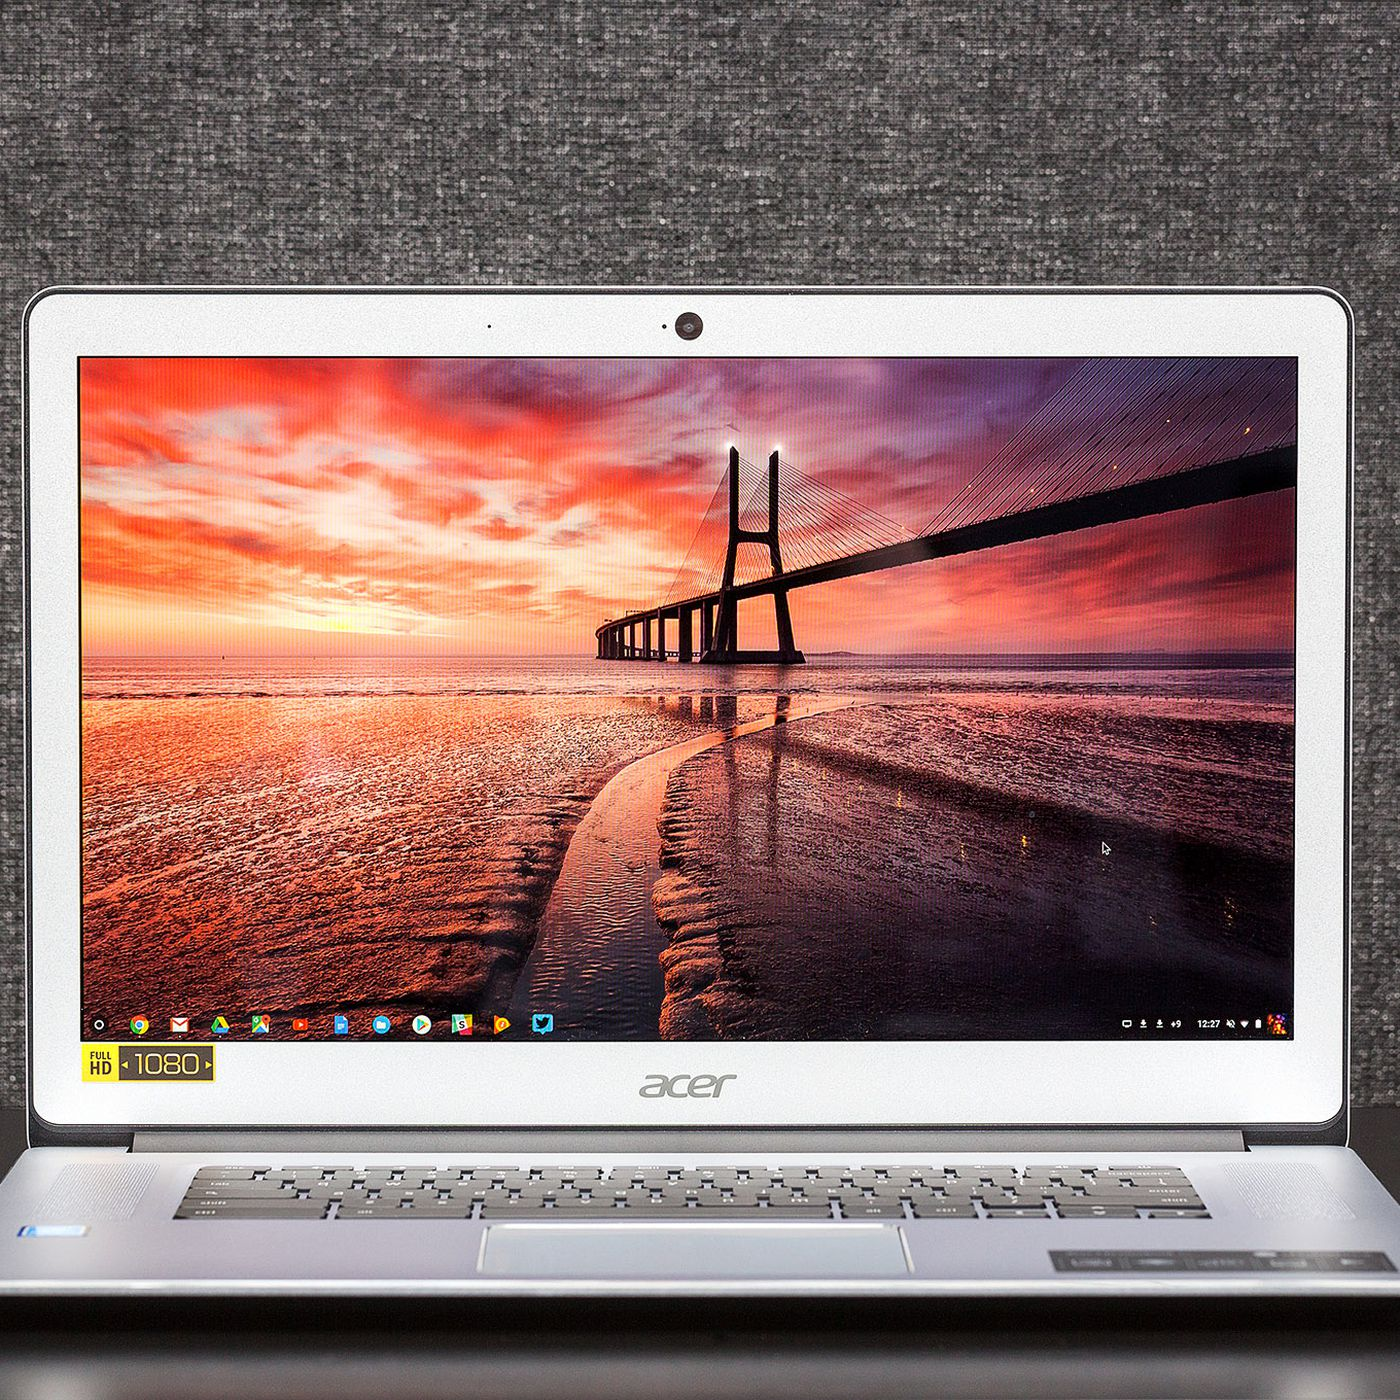 Linux Apps On Chrome Os Coming To 18 More Chromebooks The Verge